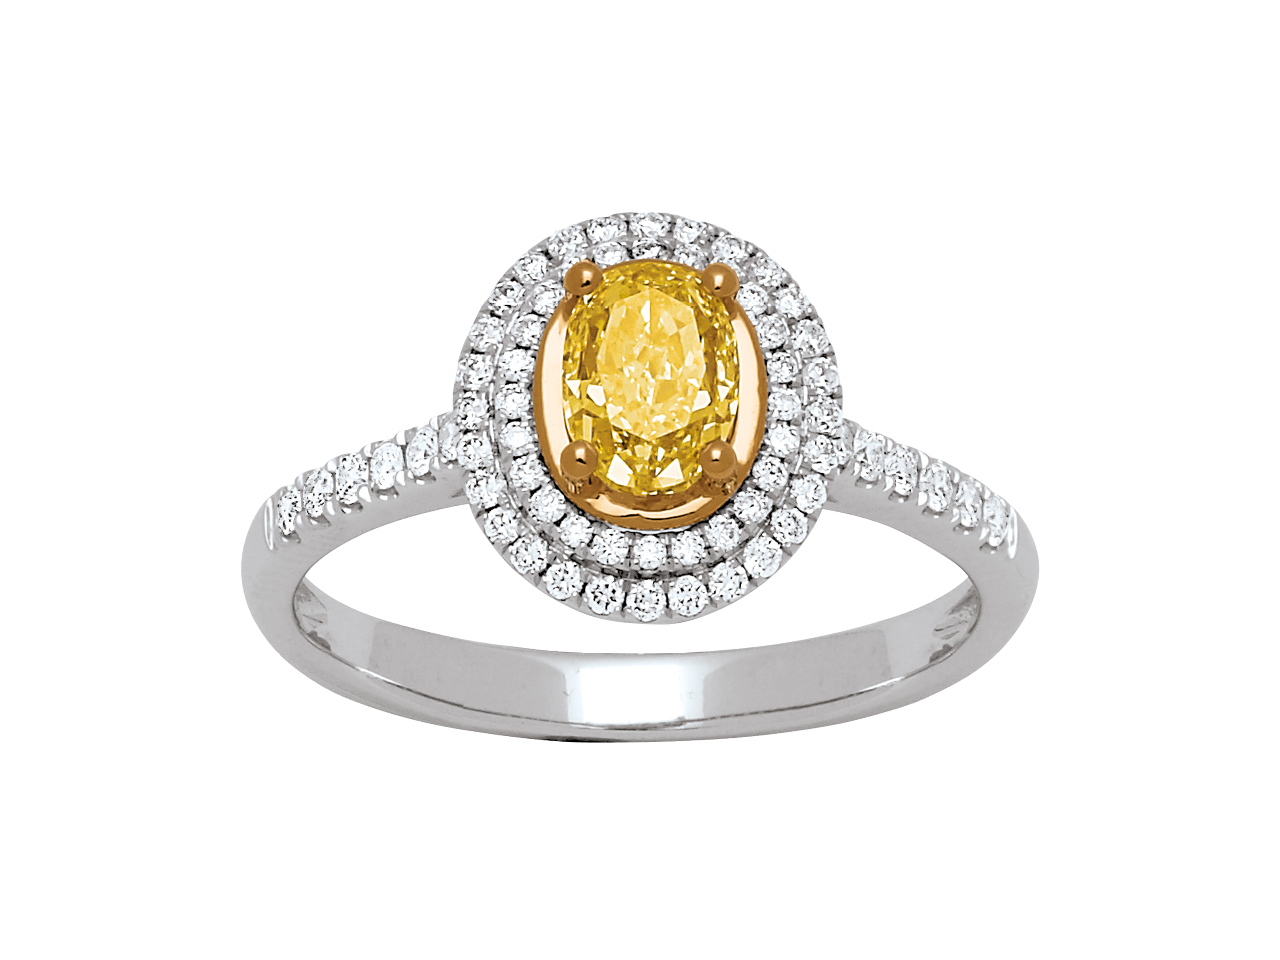 Bague Solitaire, diamant jaune ovale 0,77ct, diamant 0,28ct, Or gris 18k, doigt 54